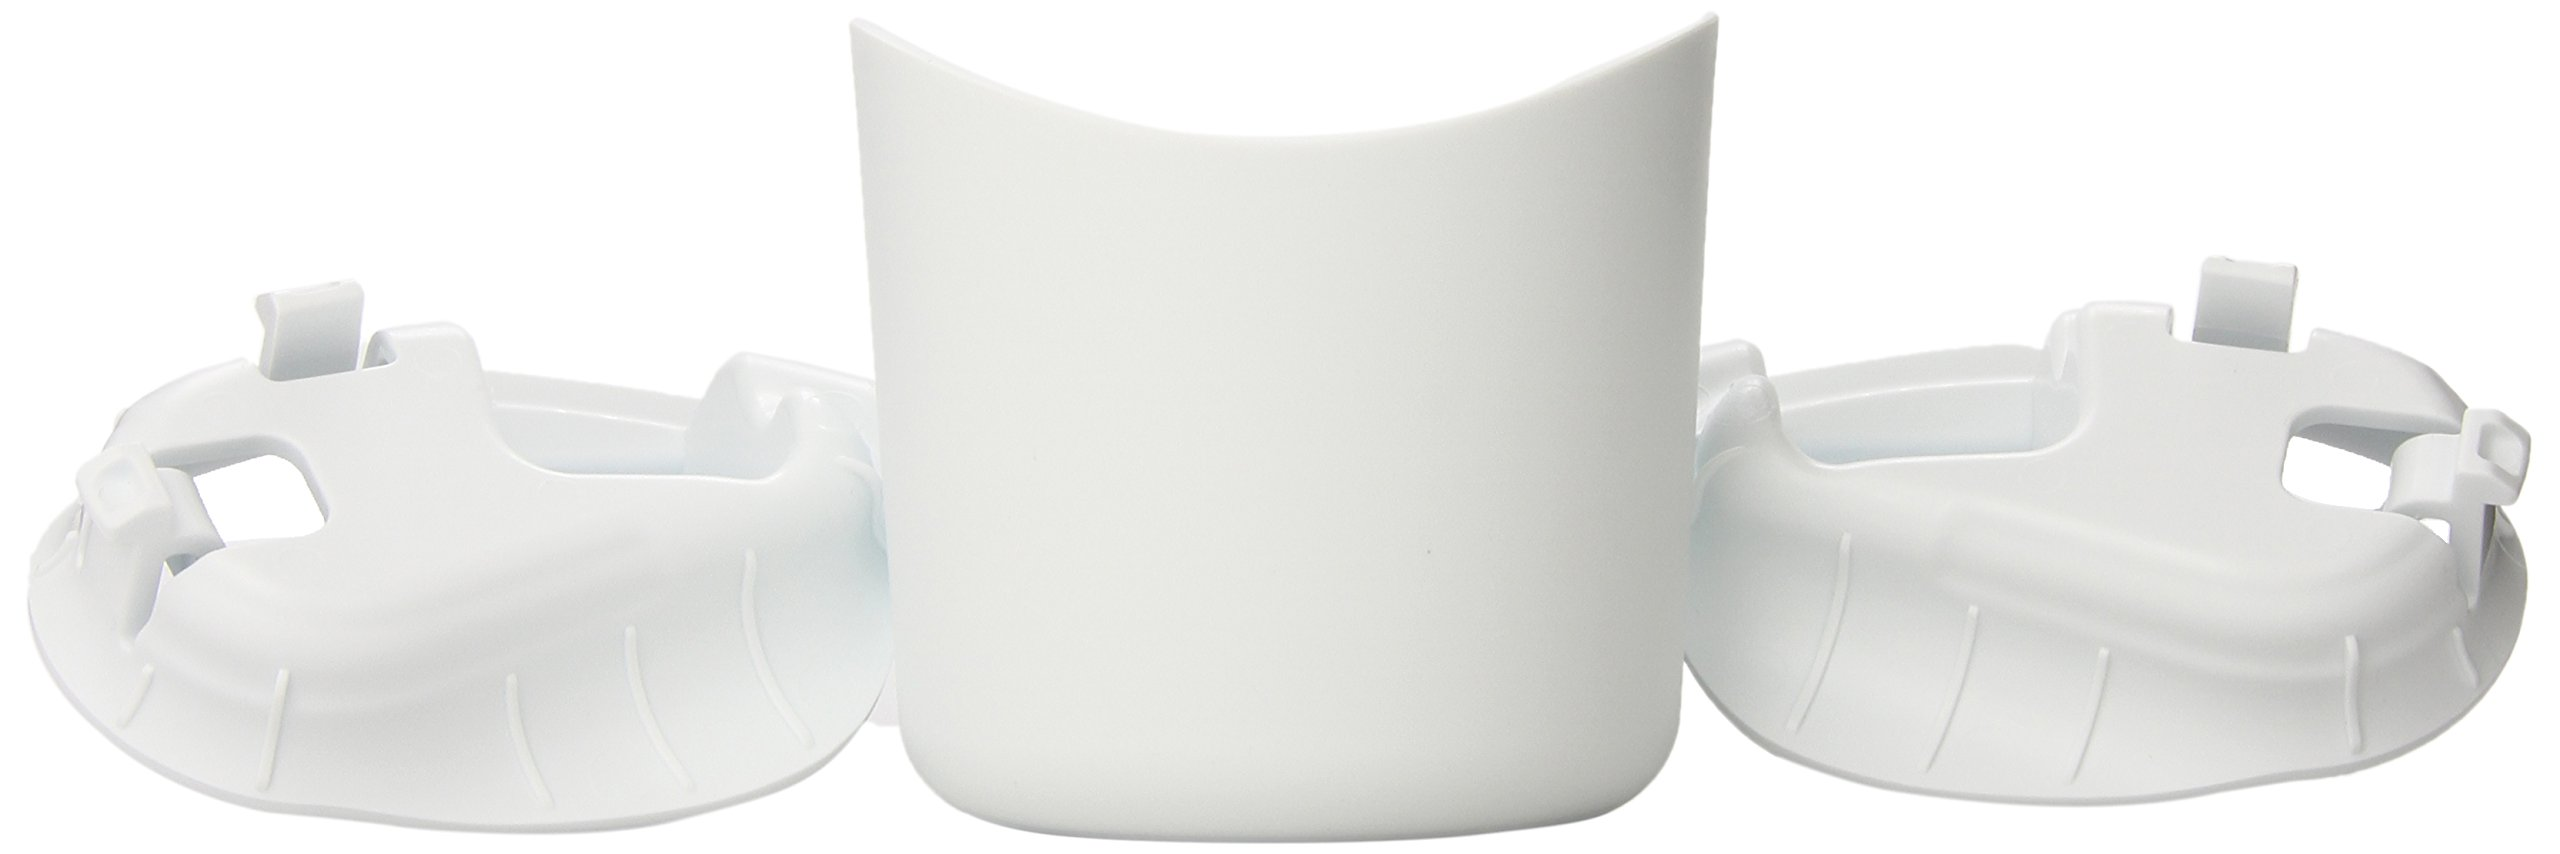 Clek Foonf Drink Thingy Cup Holder, White